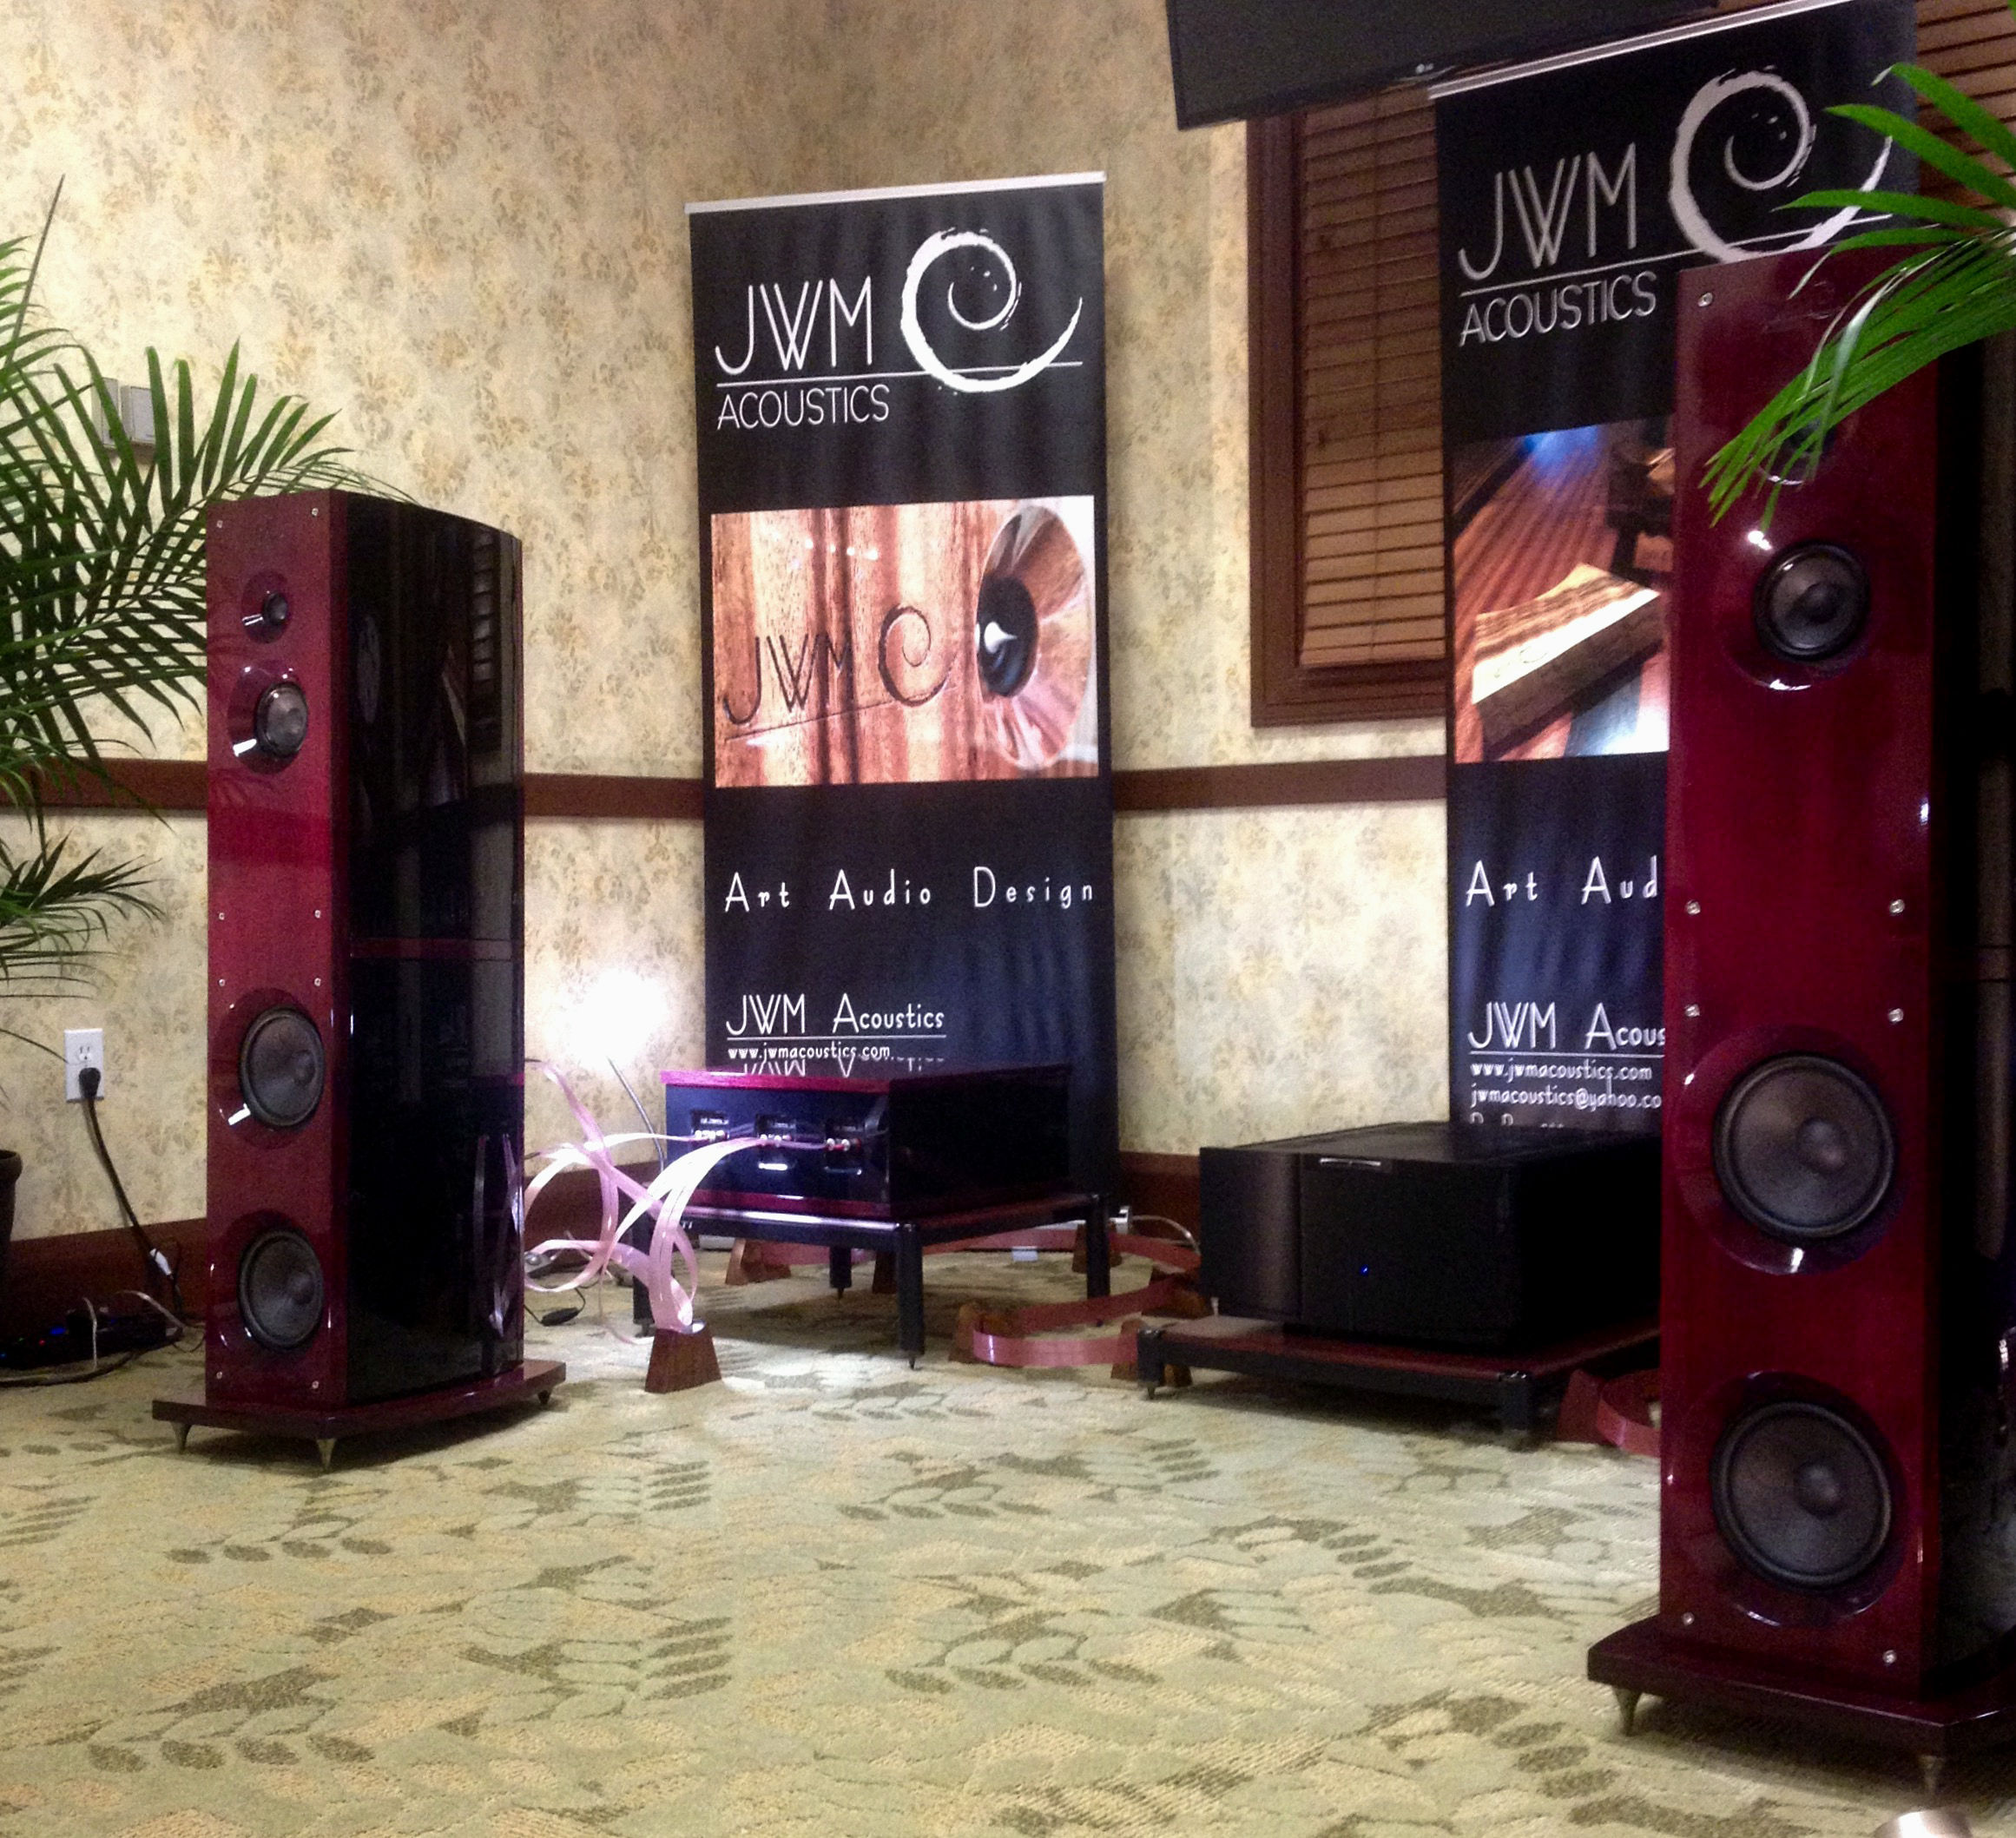 Blog Jwm Acoustics Car Preamplifier Amp Artificial Earth The Rex Preamp Fed Mighty Vk 655se Power With Gusto Having One Of Quietest All Tube Preamps In World Powering A True Super Is